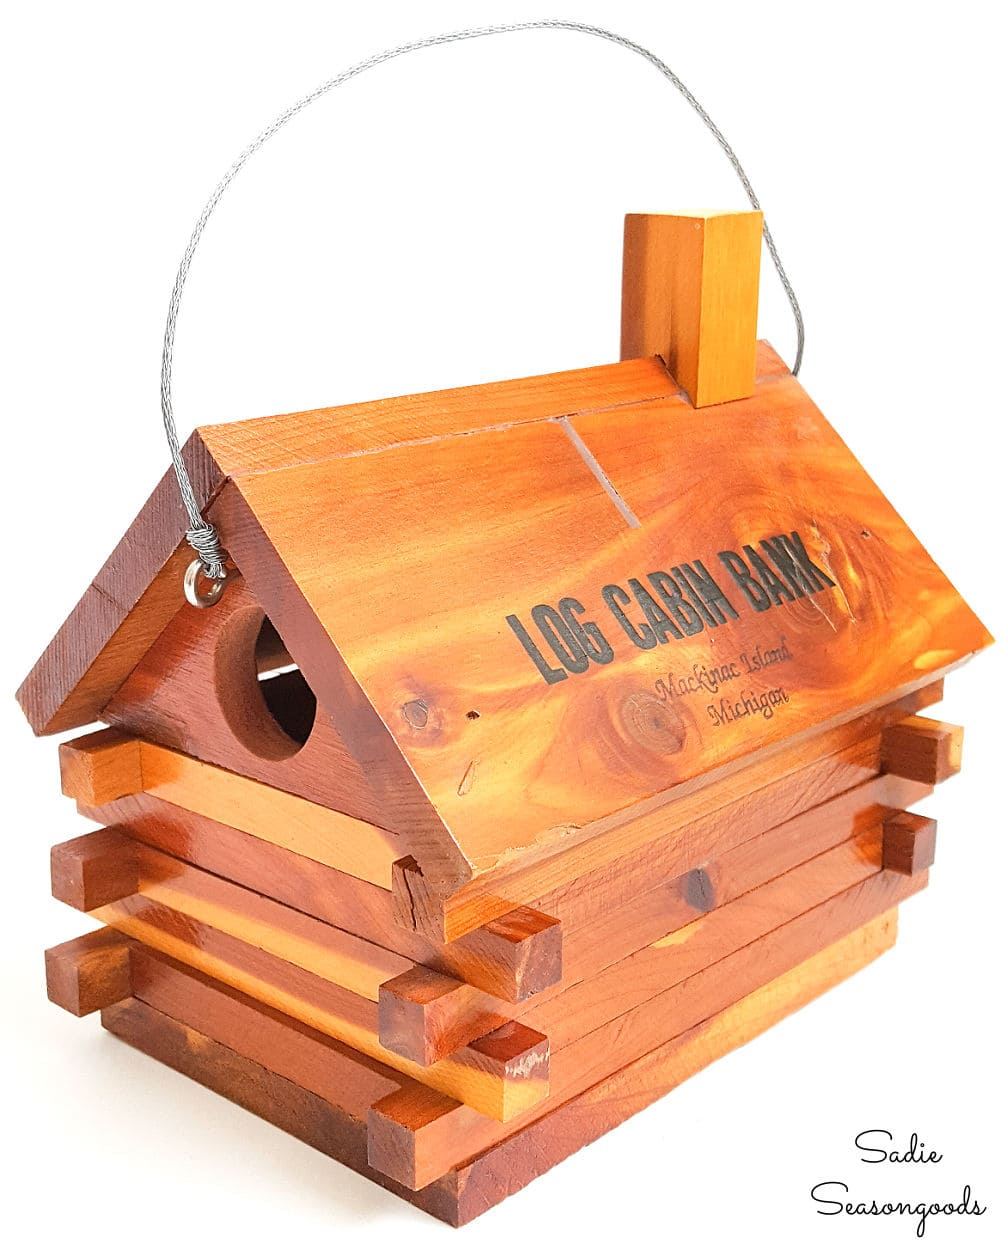 Cabin birdhouse from a vintage coin bank